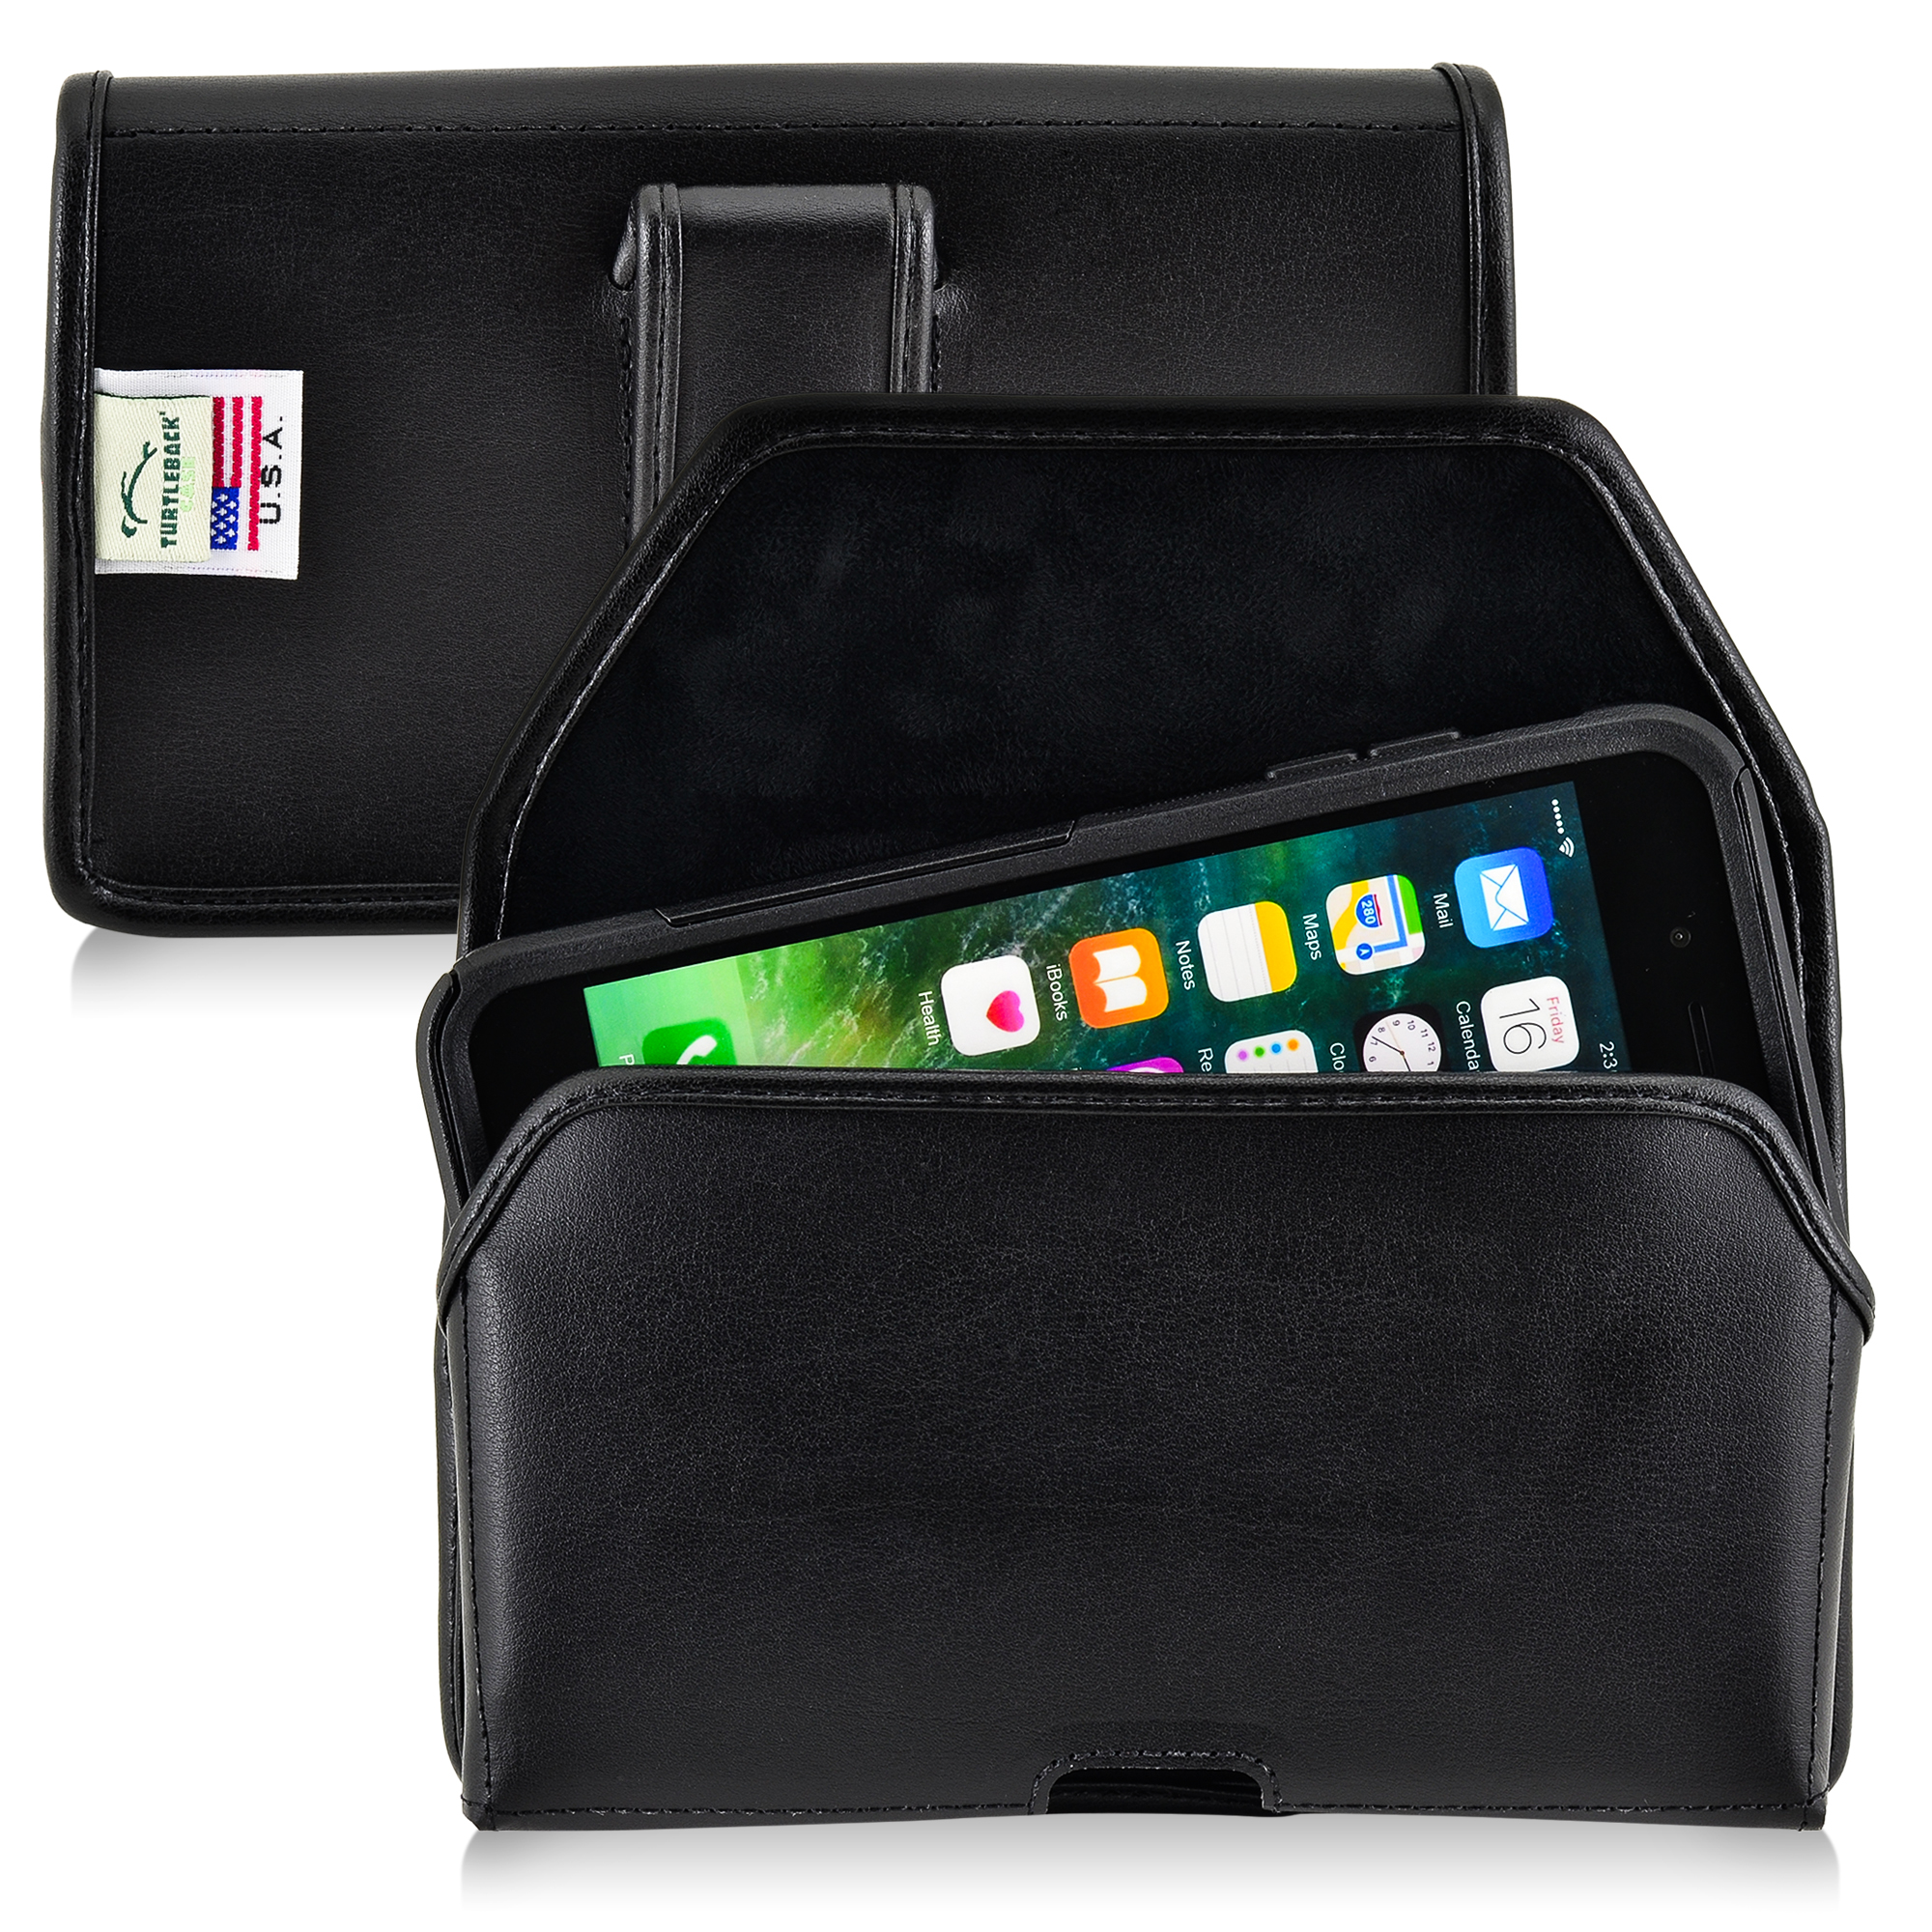 iPhone 7 Plus Commuter Holster, Turtleback iPhone 7 with Otterbox Commuter Belt Case, Black Pouch with Belt Clip, in Leather and Nylon - Made in USA